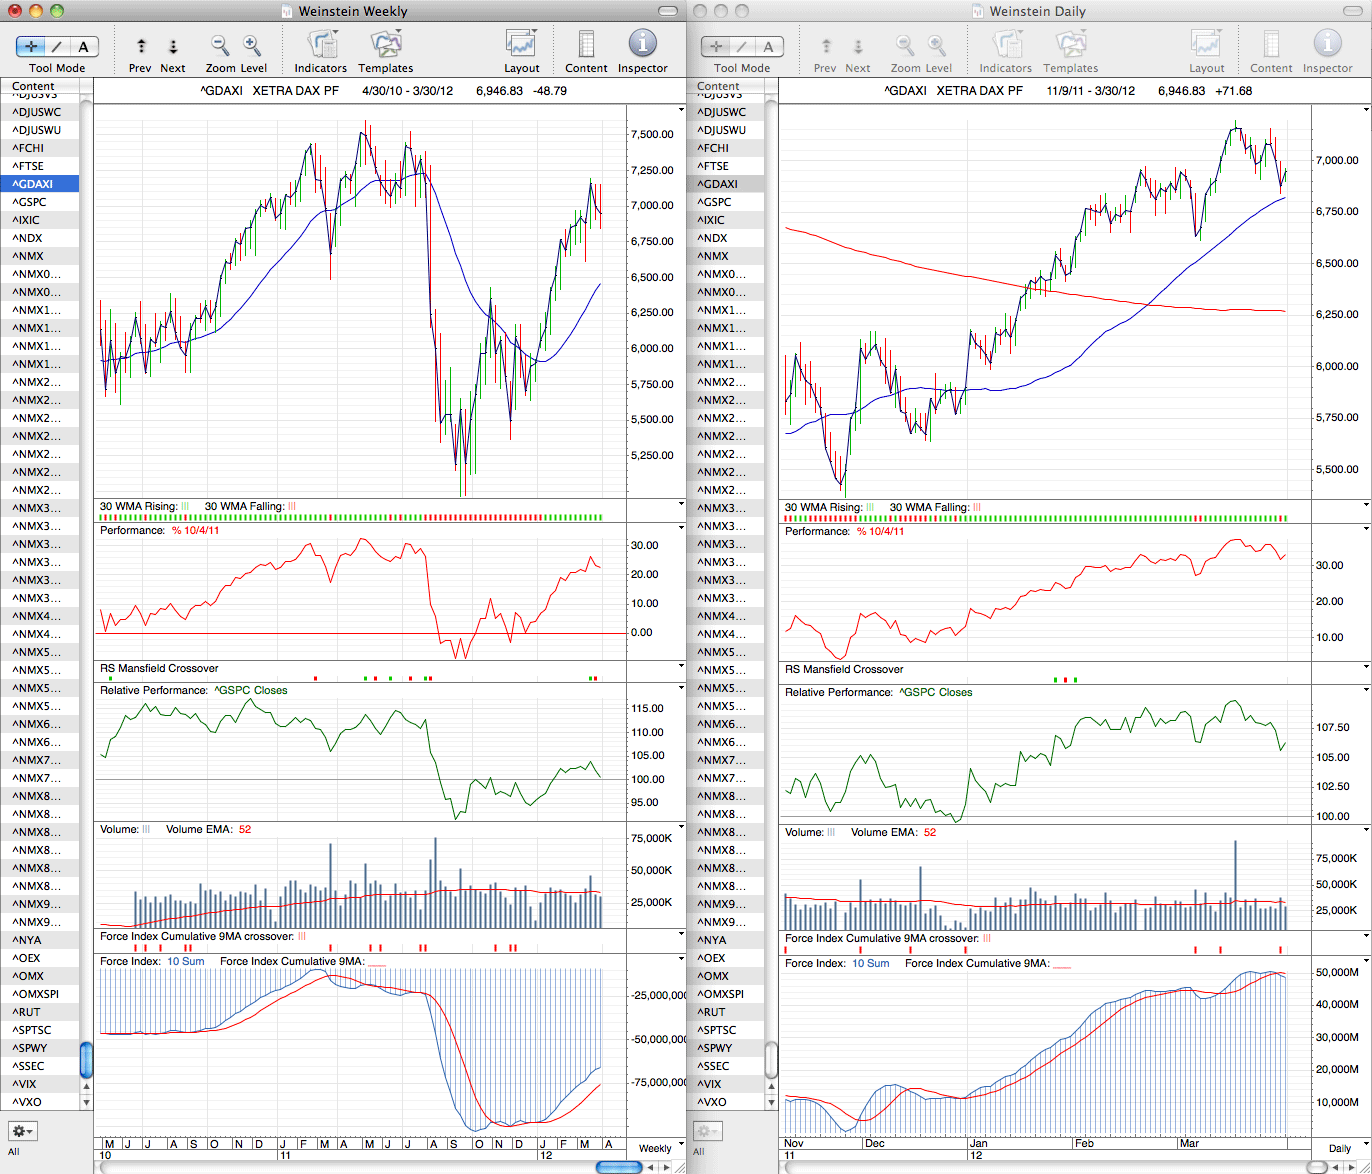 dax_weekly_30_3_12.png